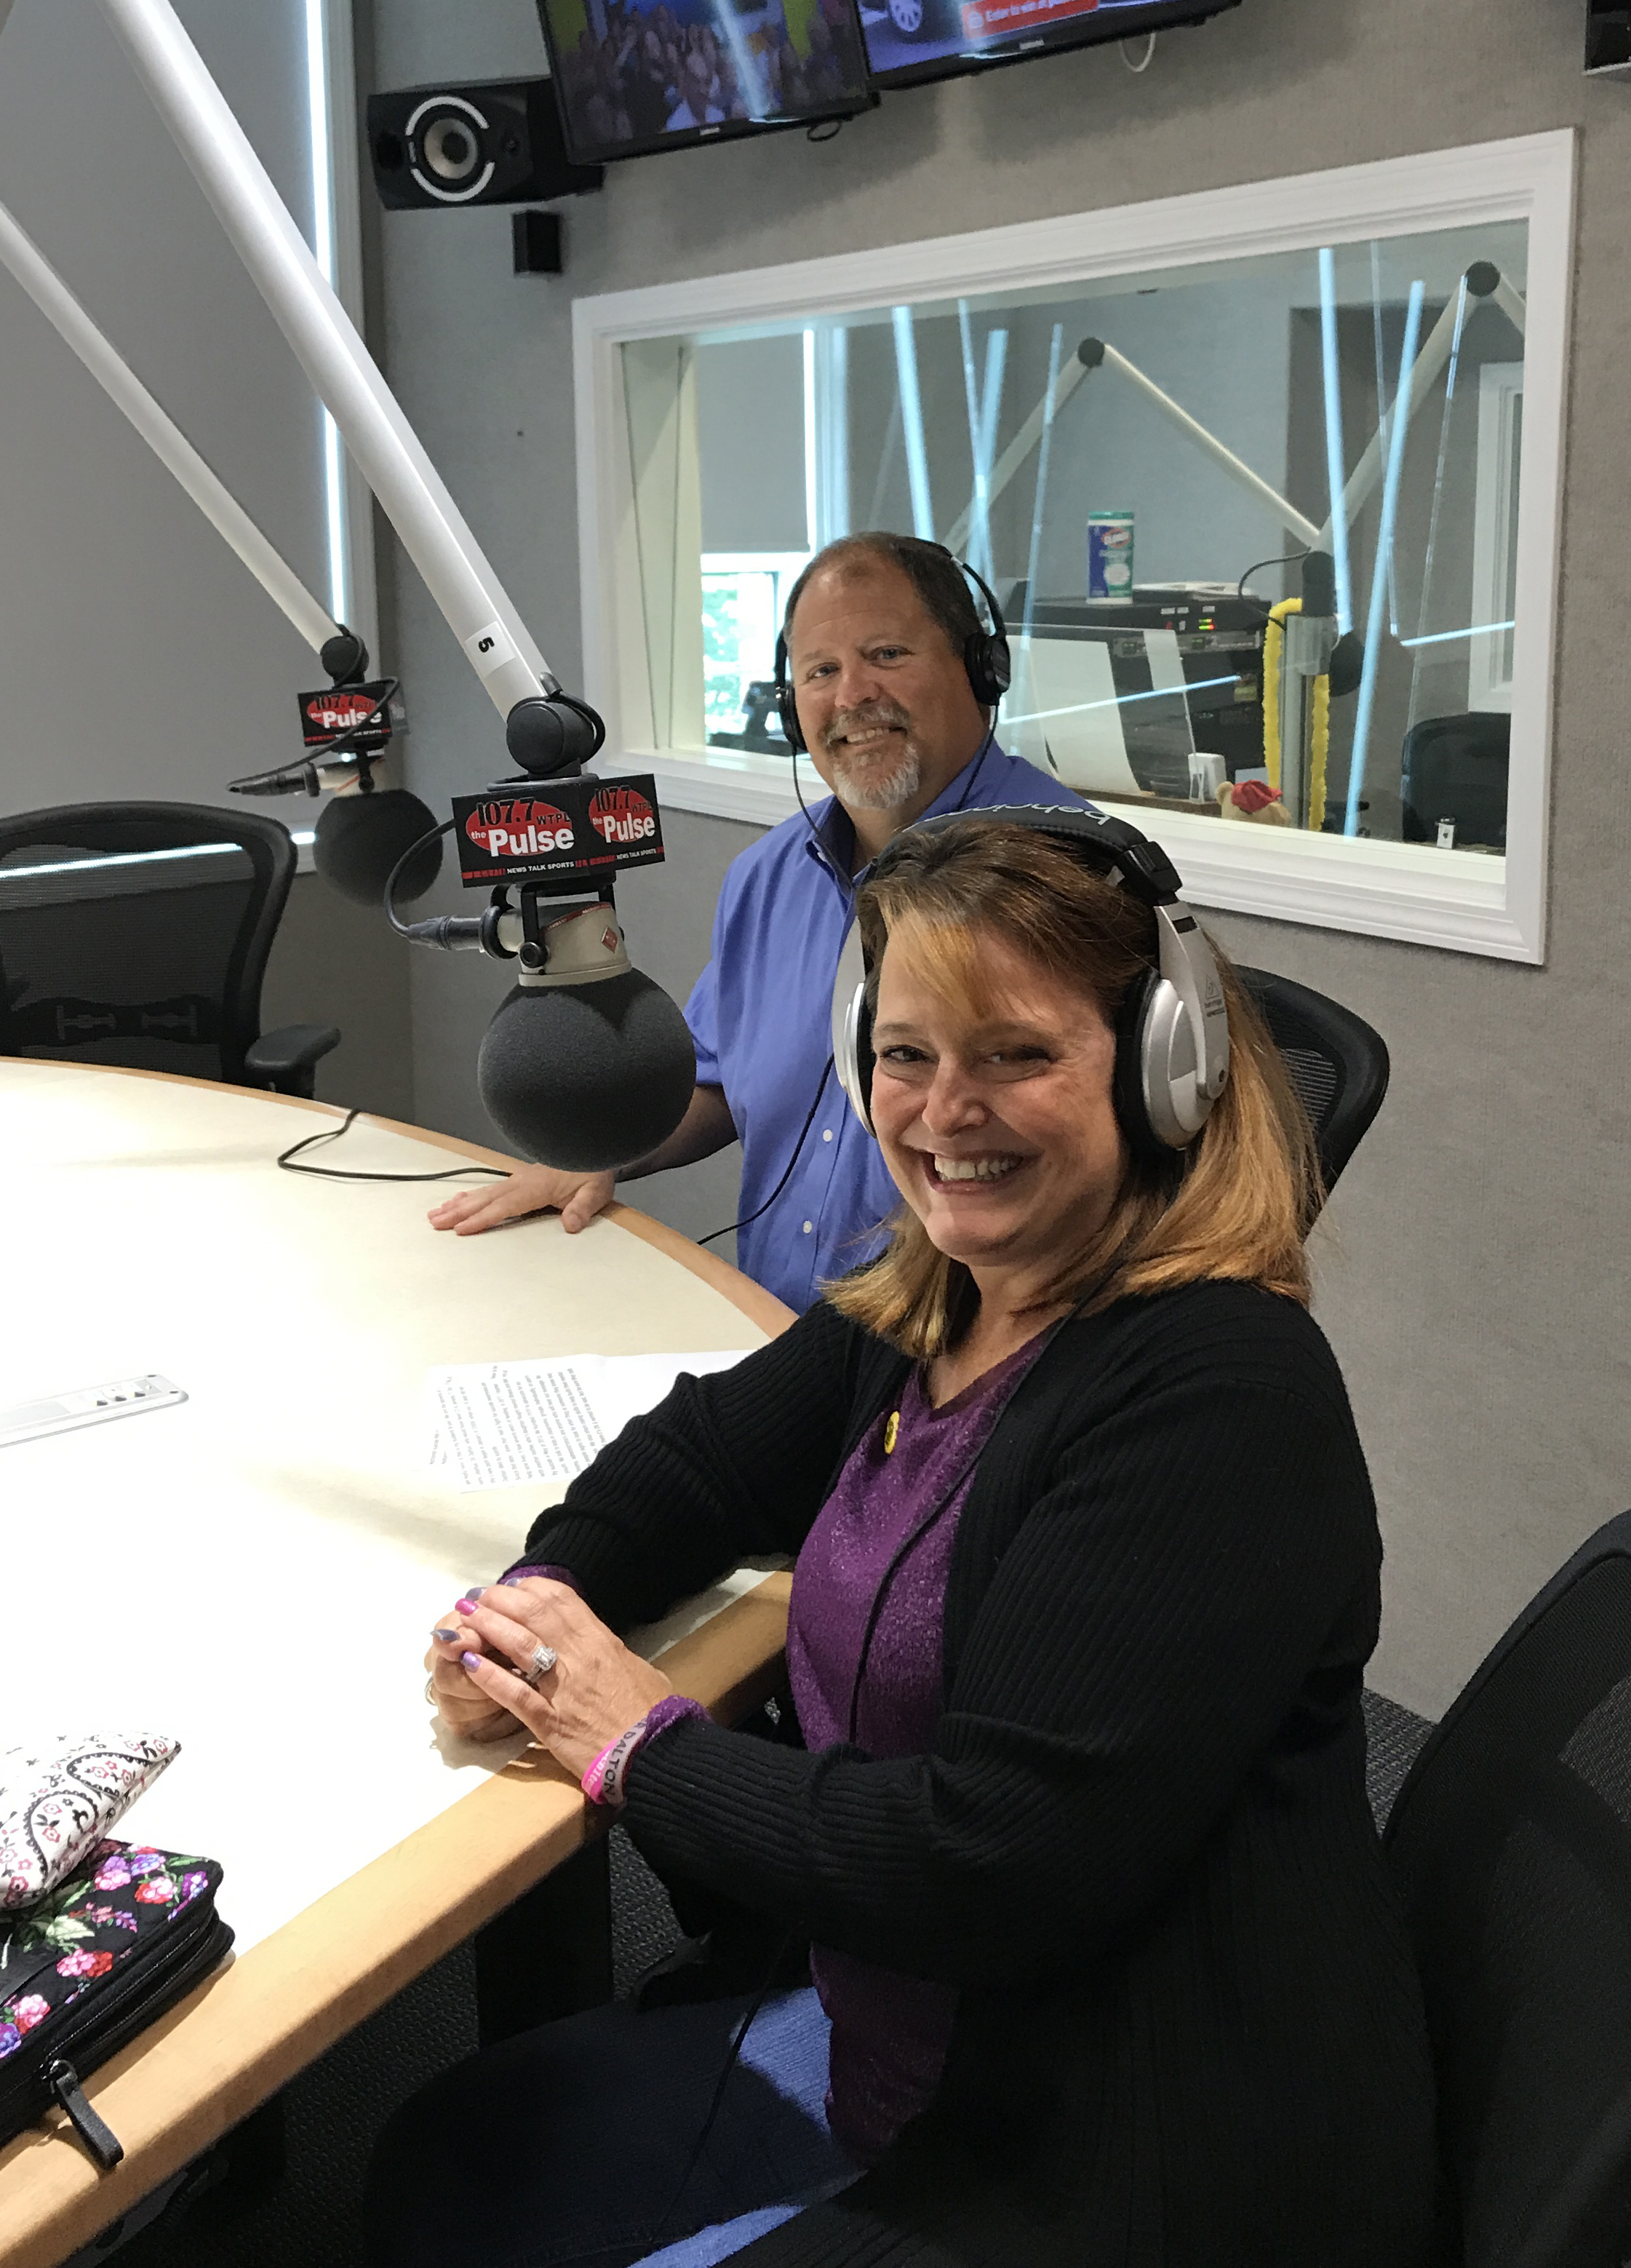 Holly & Bryan Fenn, honored to share their personal story broadcast from 107.7- The Pulse, on  World Suicide Prevention Day , 9/10/18.